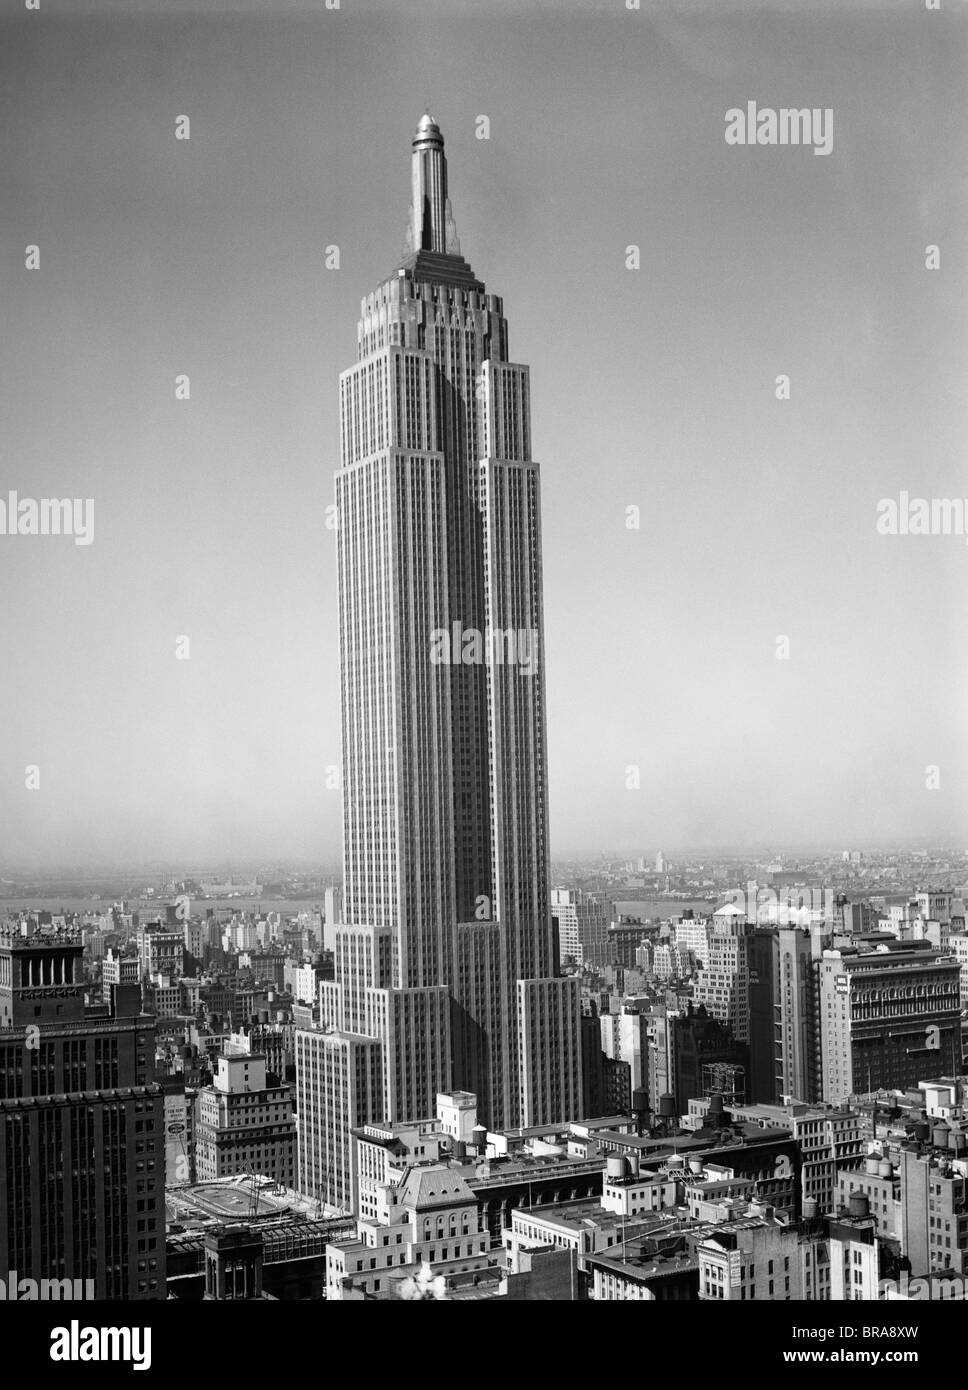 1930s NEW YORK CITY EMPIRE STATE BUILDING FULL LENGTH WITHOUT ANTENNAE - Stock Image